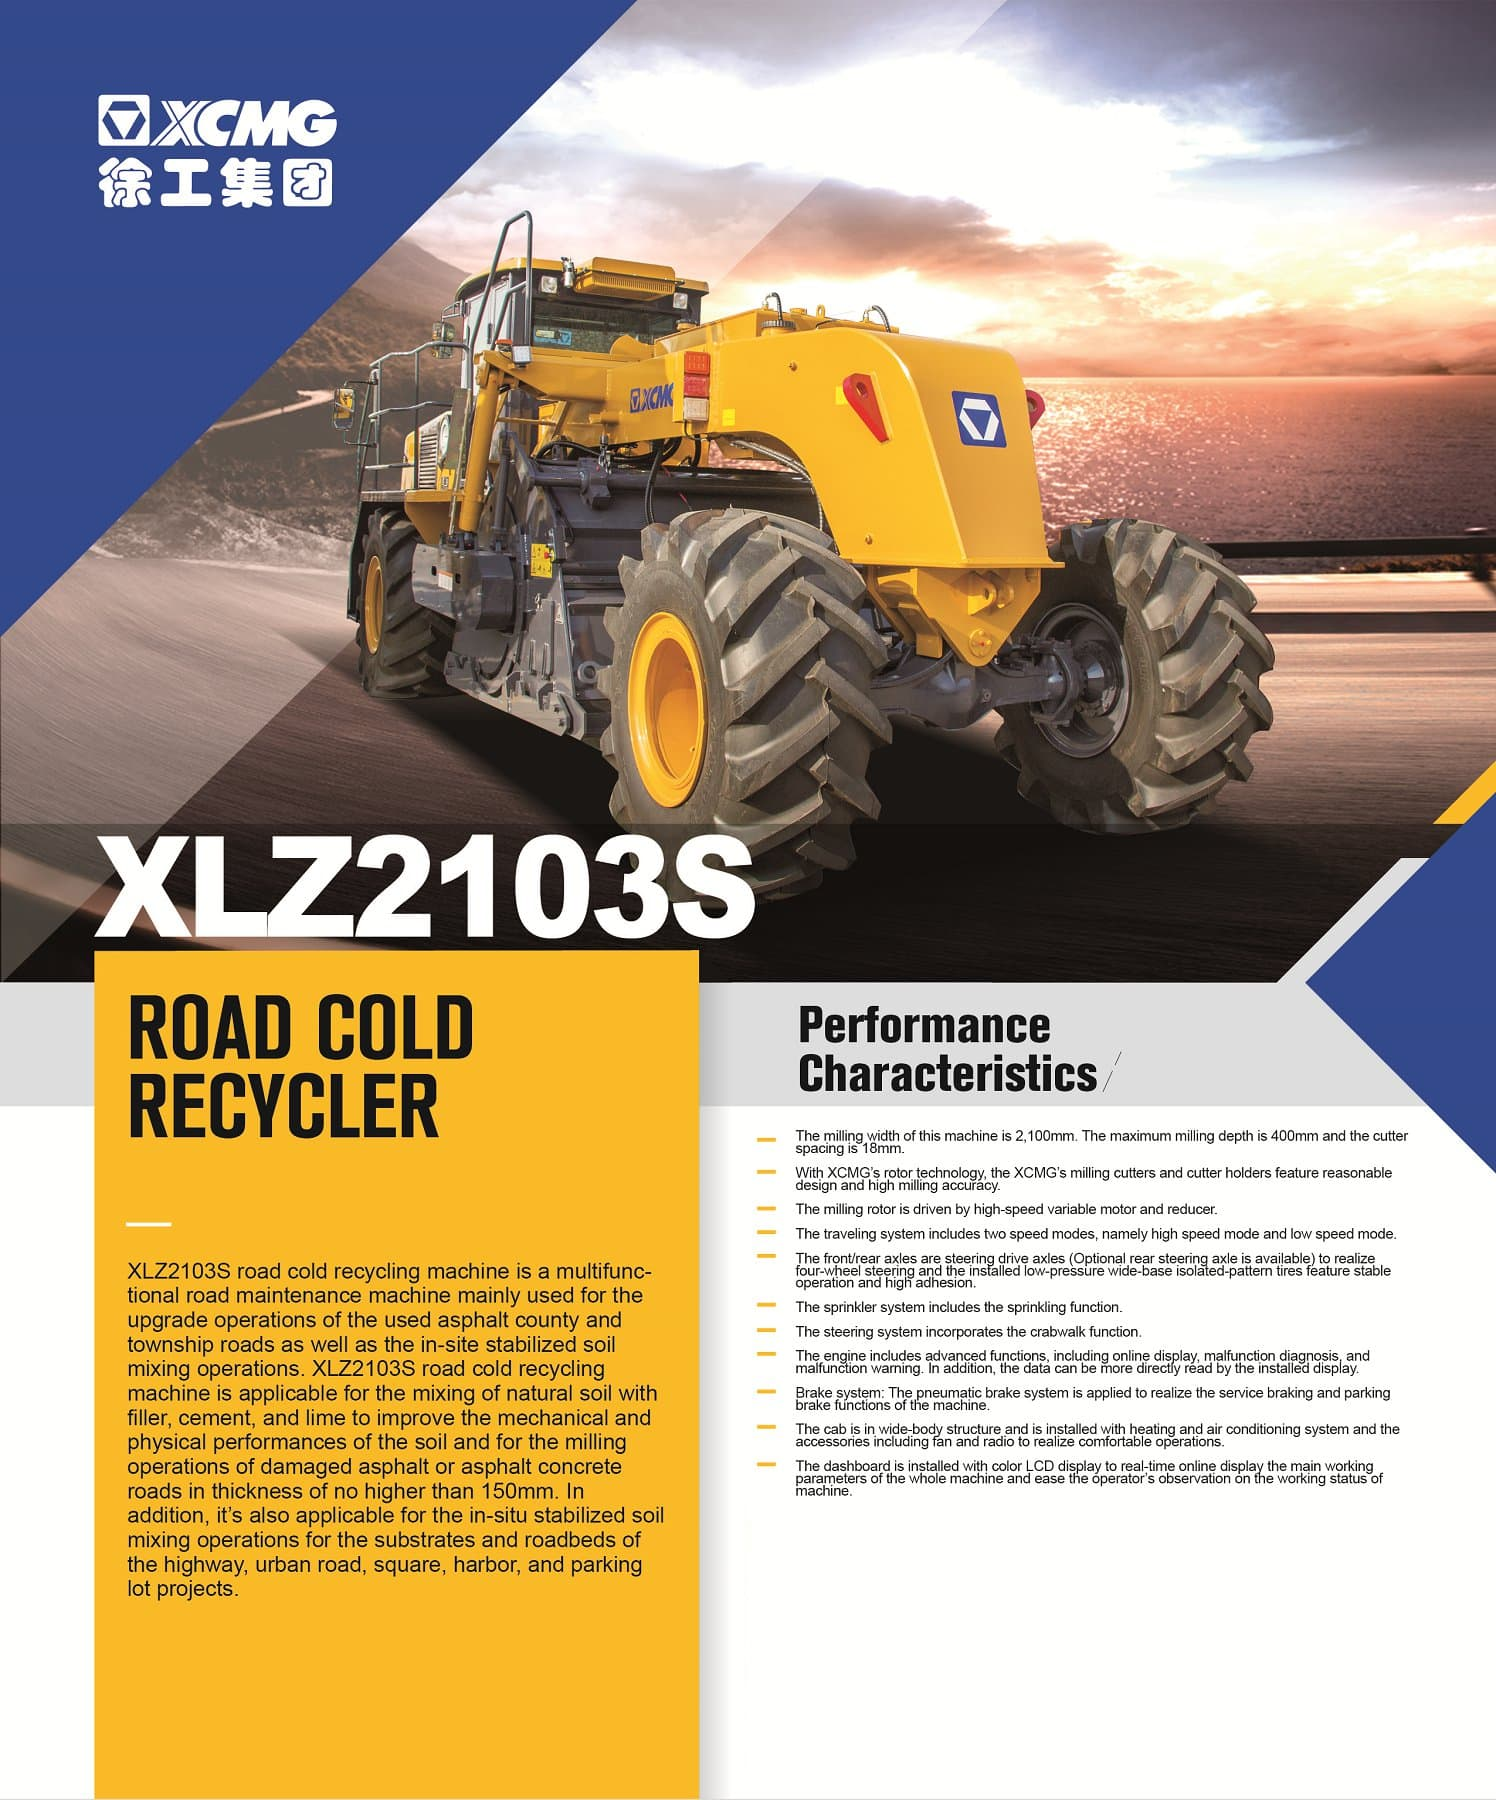 XCMG Official Road Cold Recycler XLZ2103S For Sale